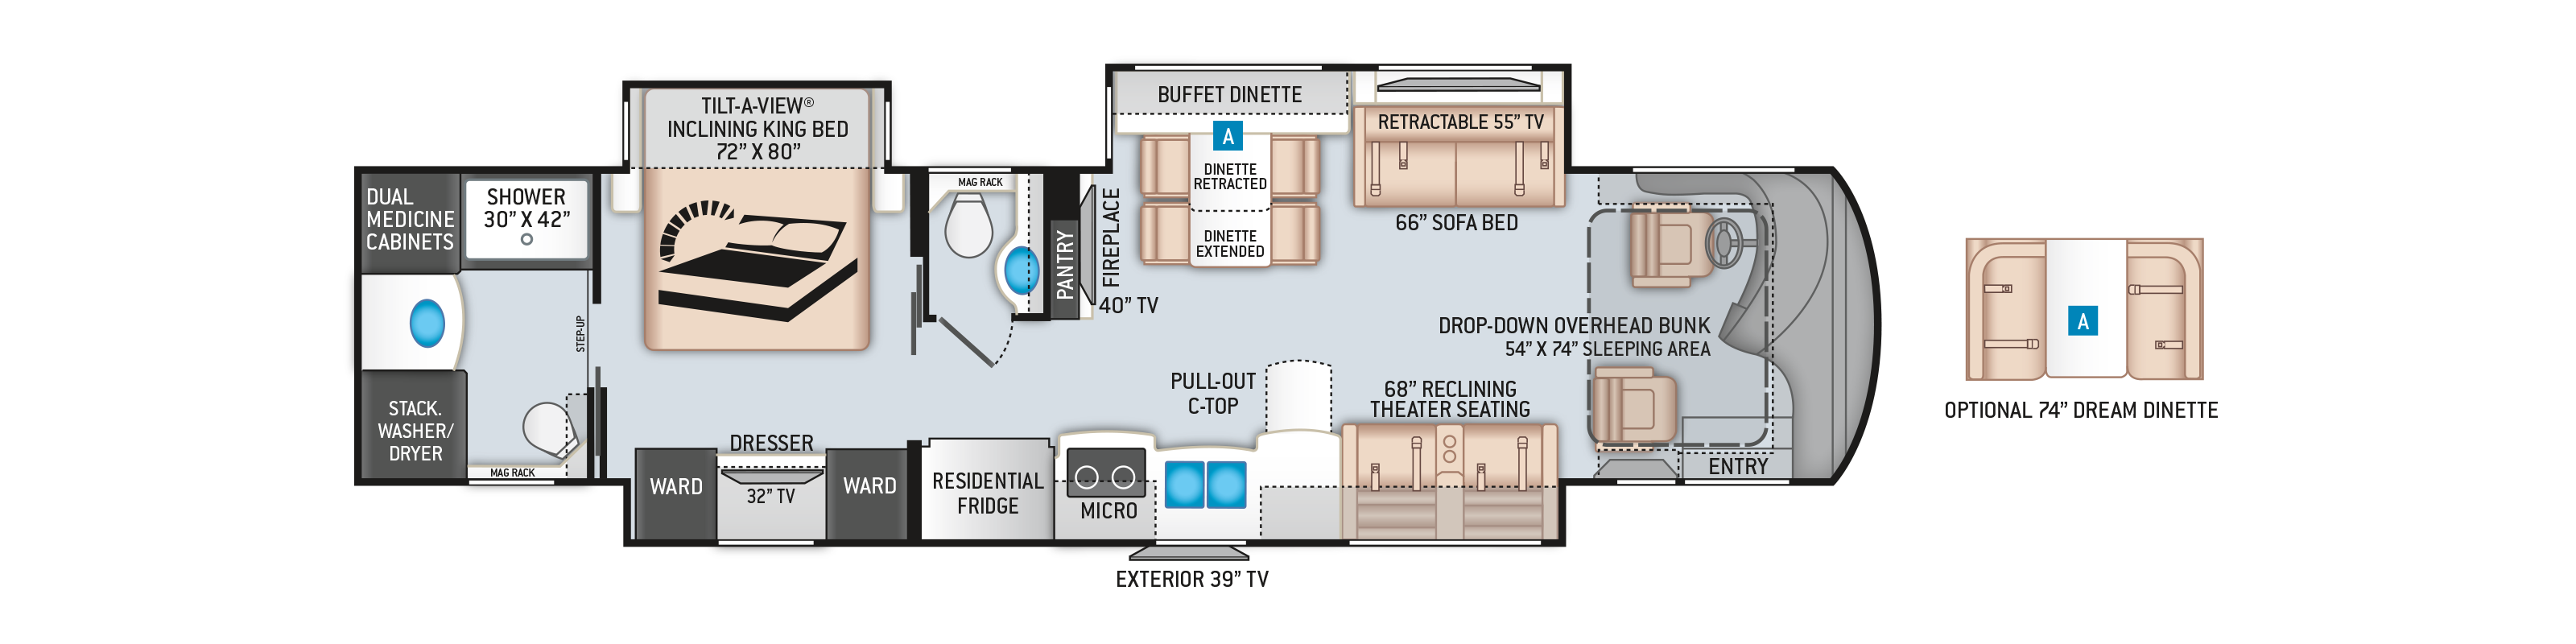 Tuscany Class A Diesel Pusher Motorhome 40RT Floor Plan